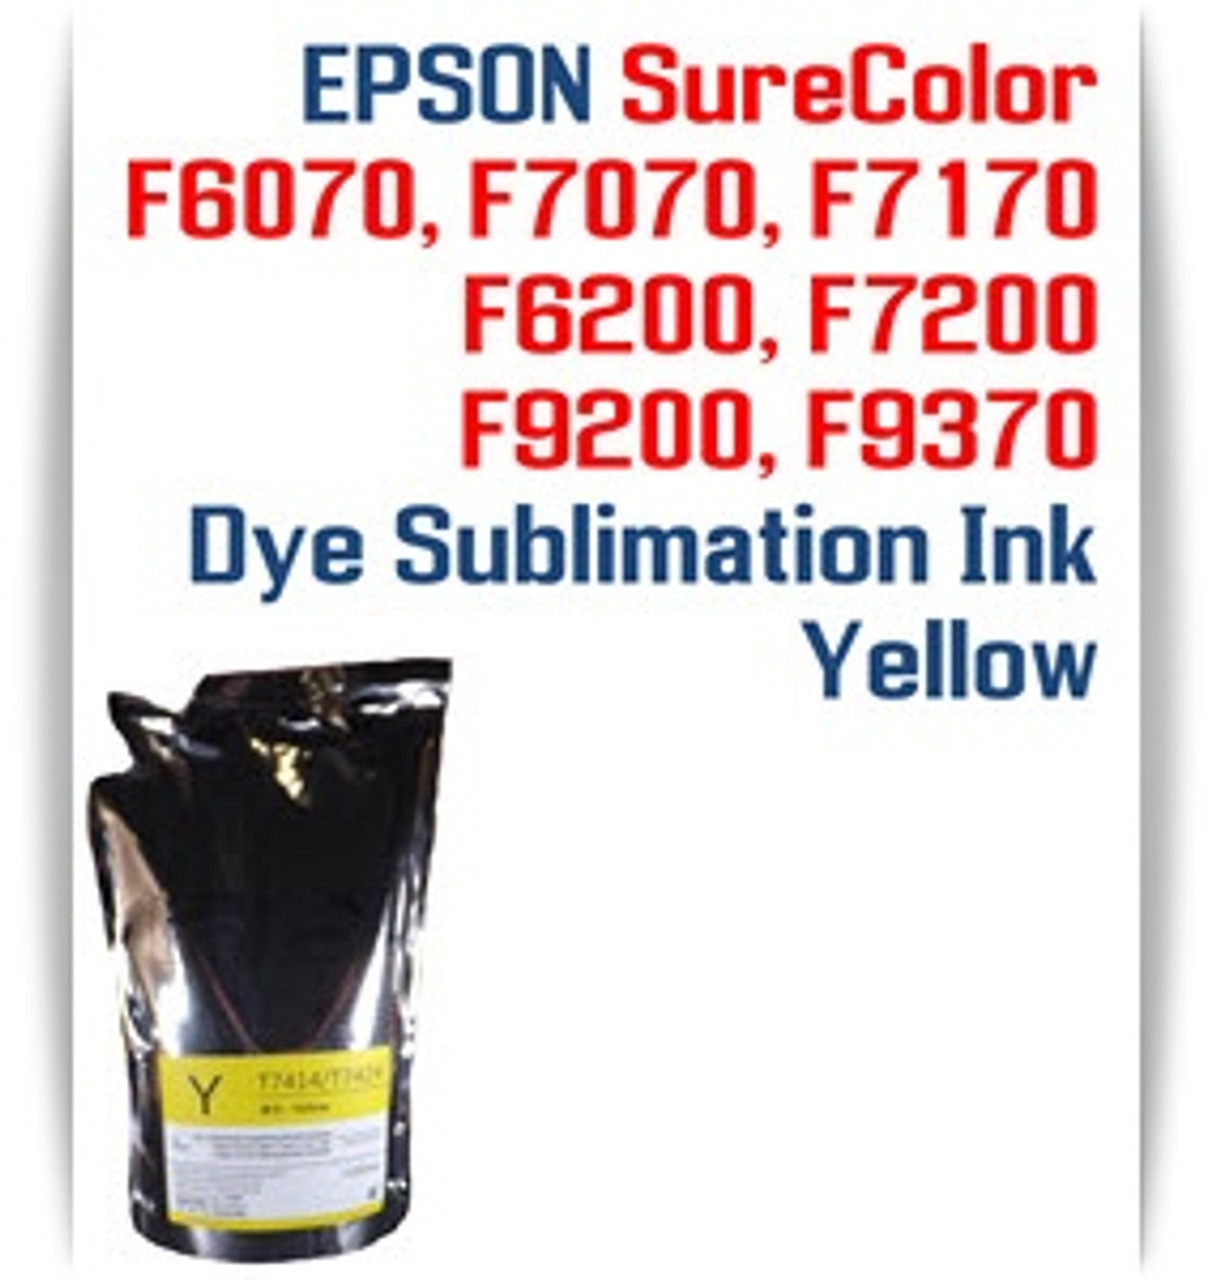 EPSON SureColor F6070, F7070, F7170, F6200, F7200, F9200, F9370 printer Dye Sublimation Ink - Yellow chip